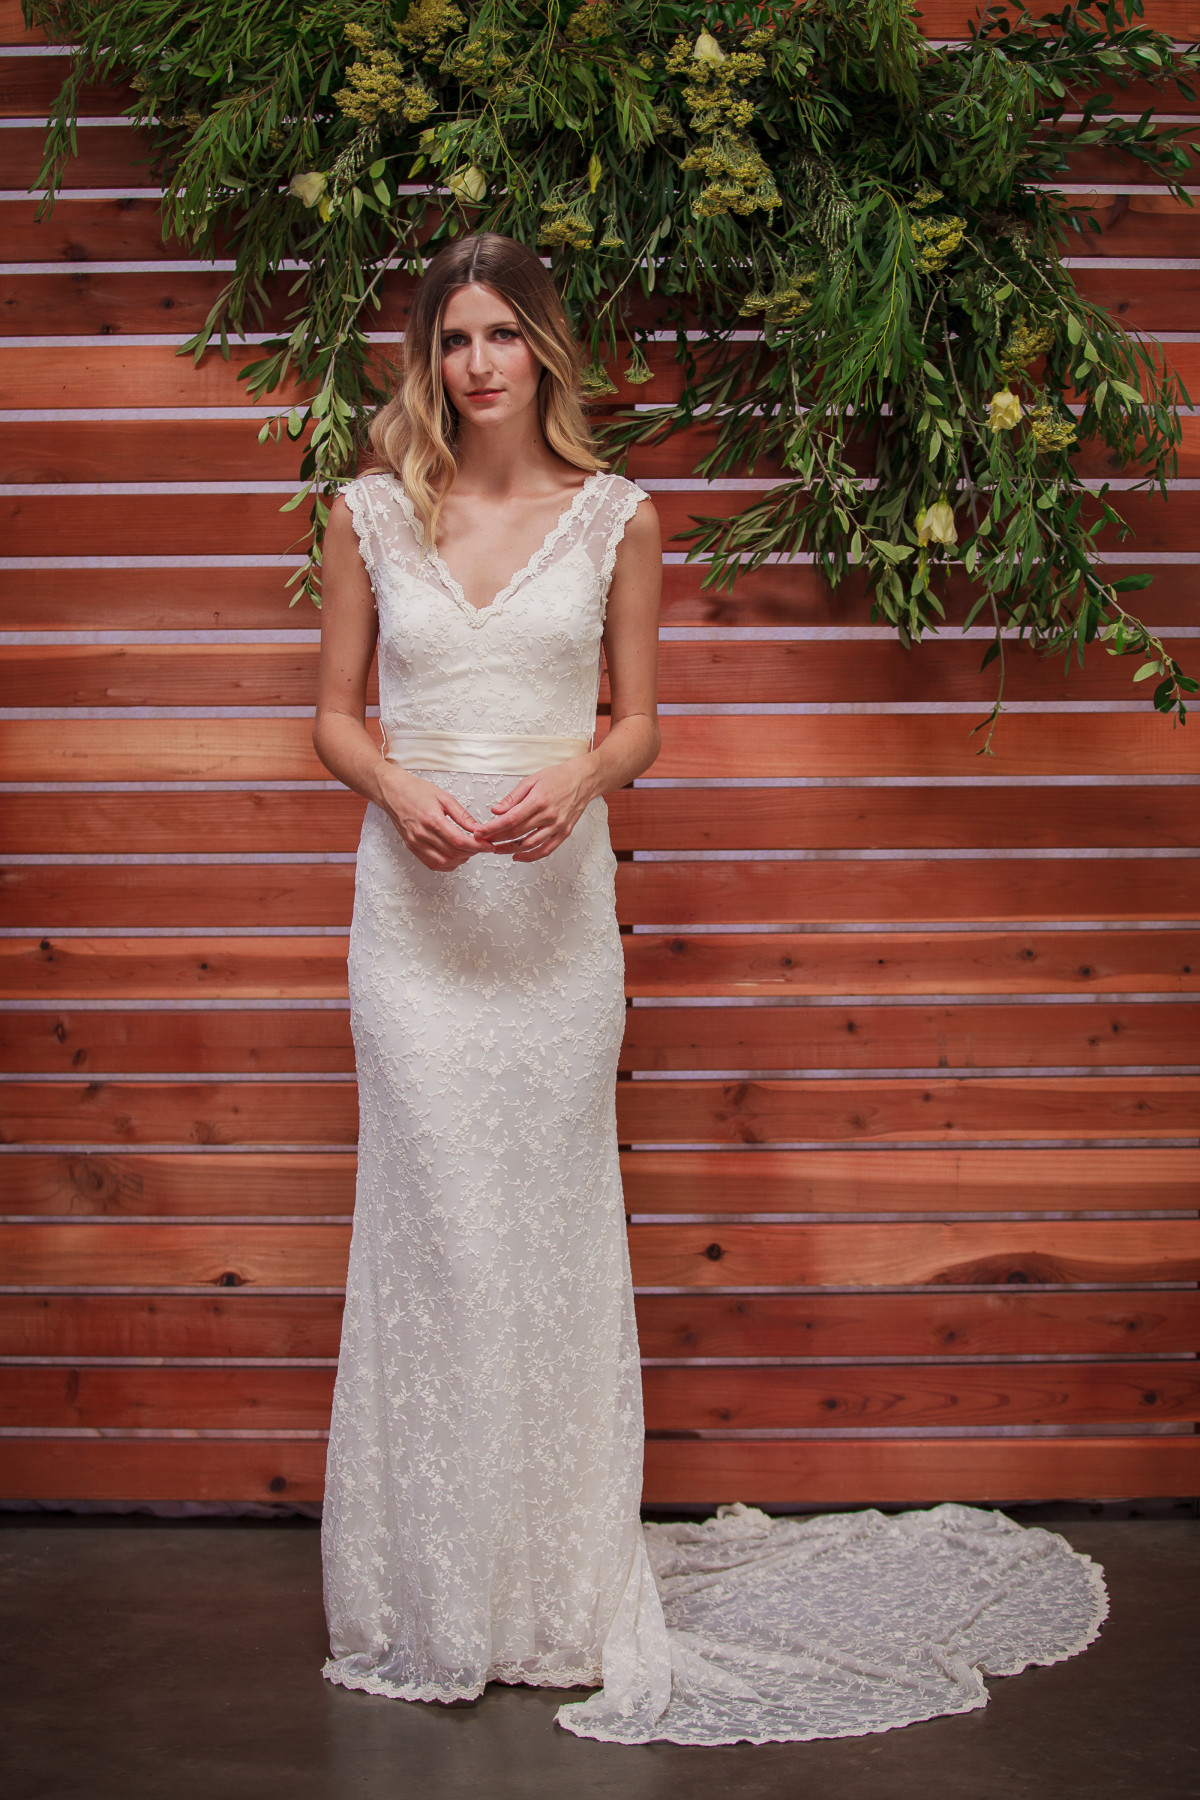 ivy-lightweight-lace-backless-wedding-dress-with-long-train